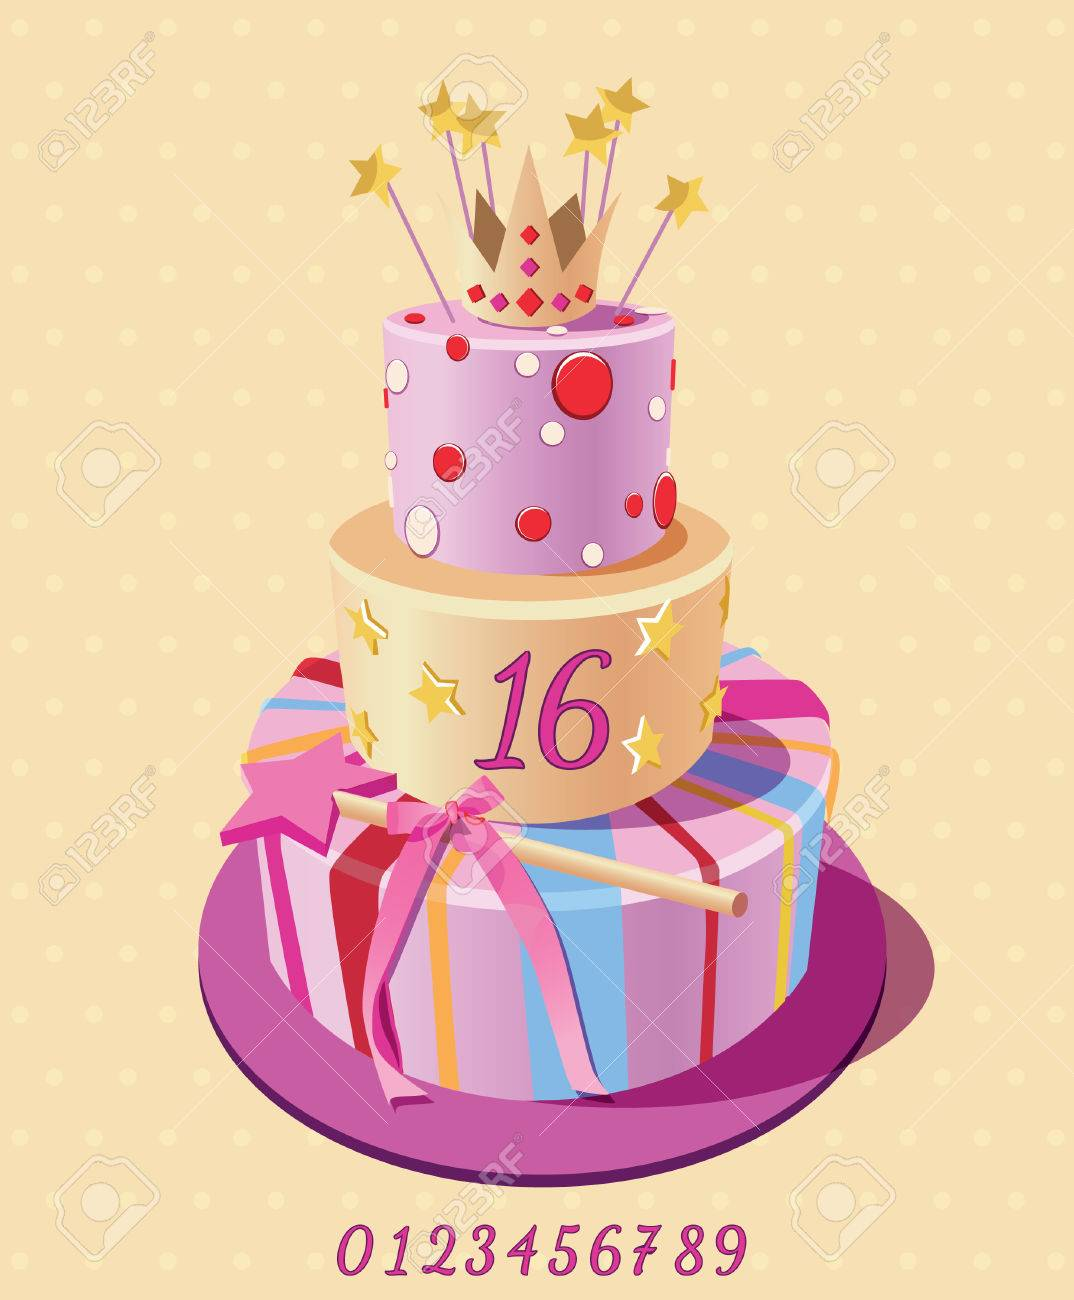 Birthday Cake Poster Vector Candle Royalty Free Klipartlar